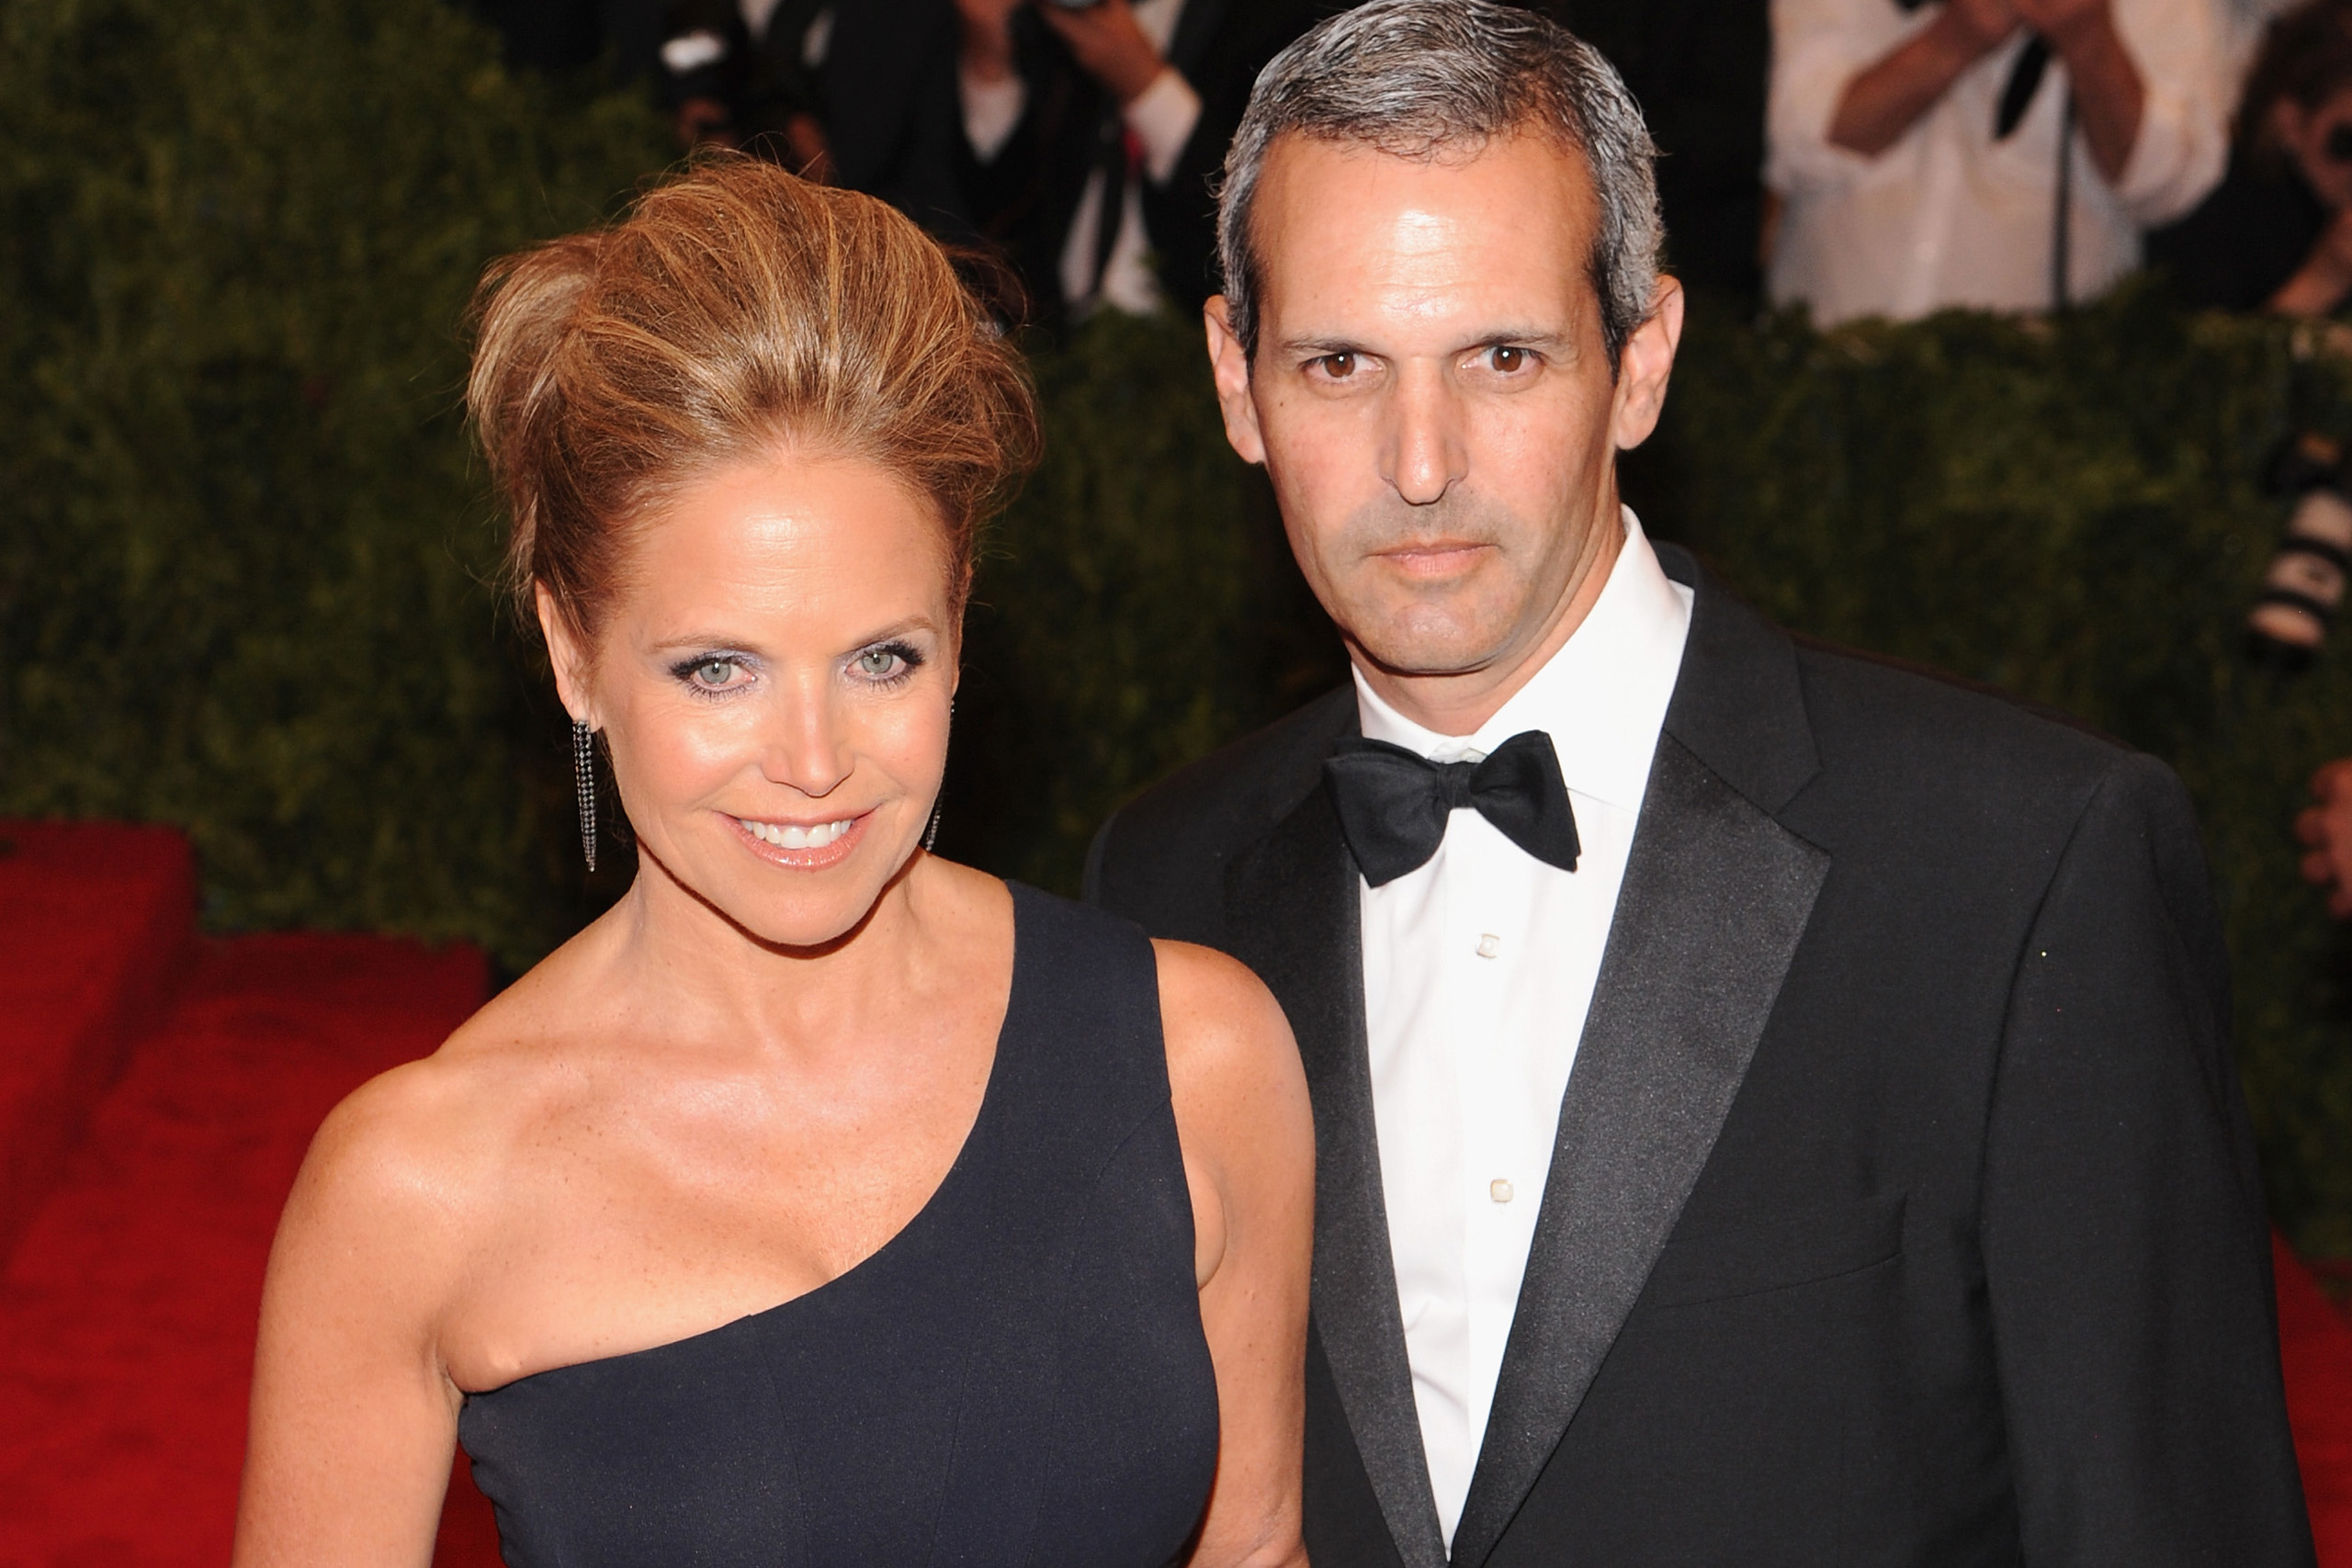 Katie Couric's Husband Wiki: Everything To Know About John Molner